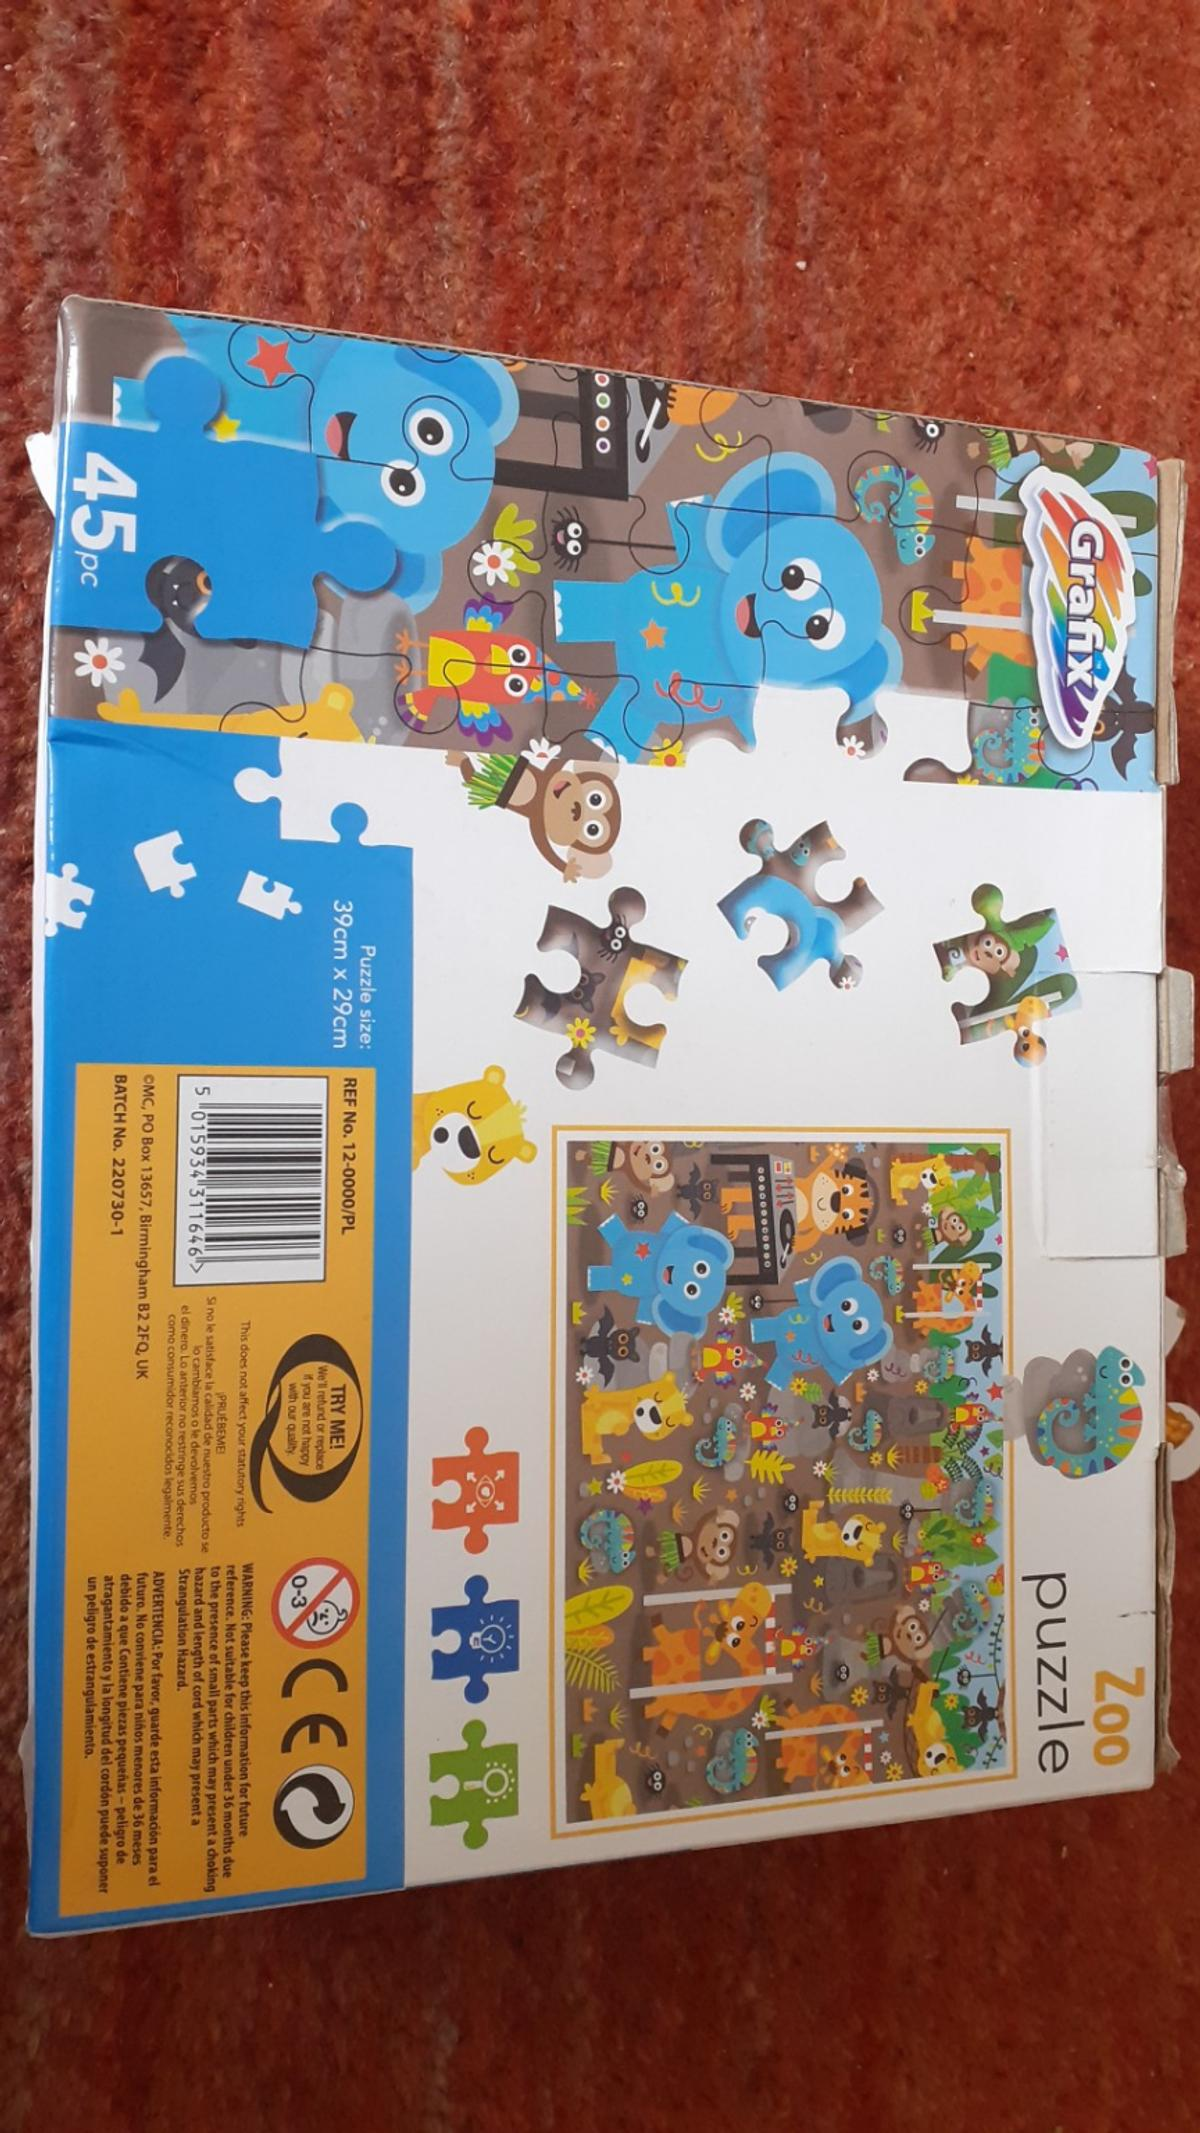 it is kids jigsaw puzzle Brand New not been used before Good Qaulty Products Selling for £2